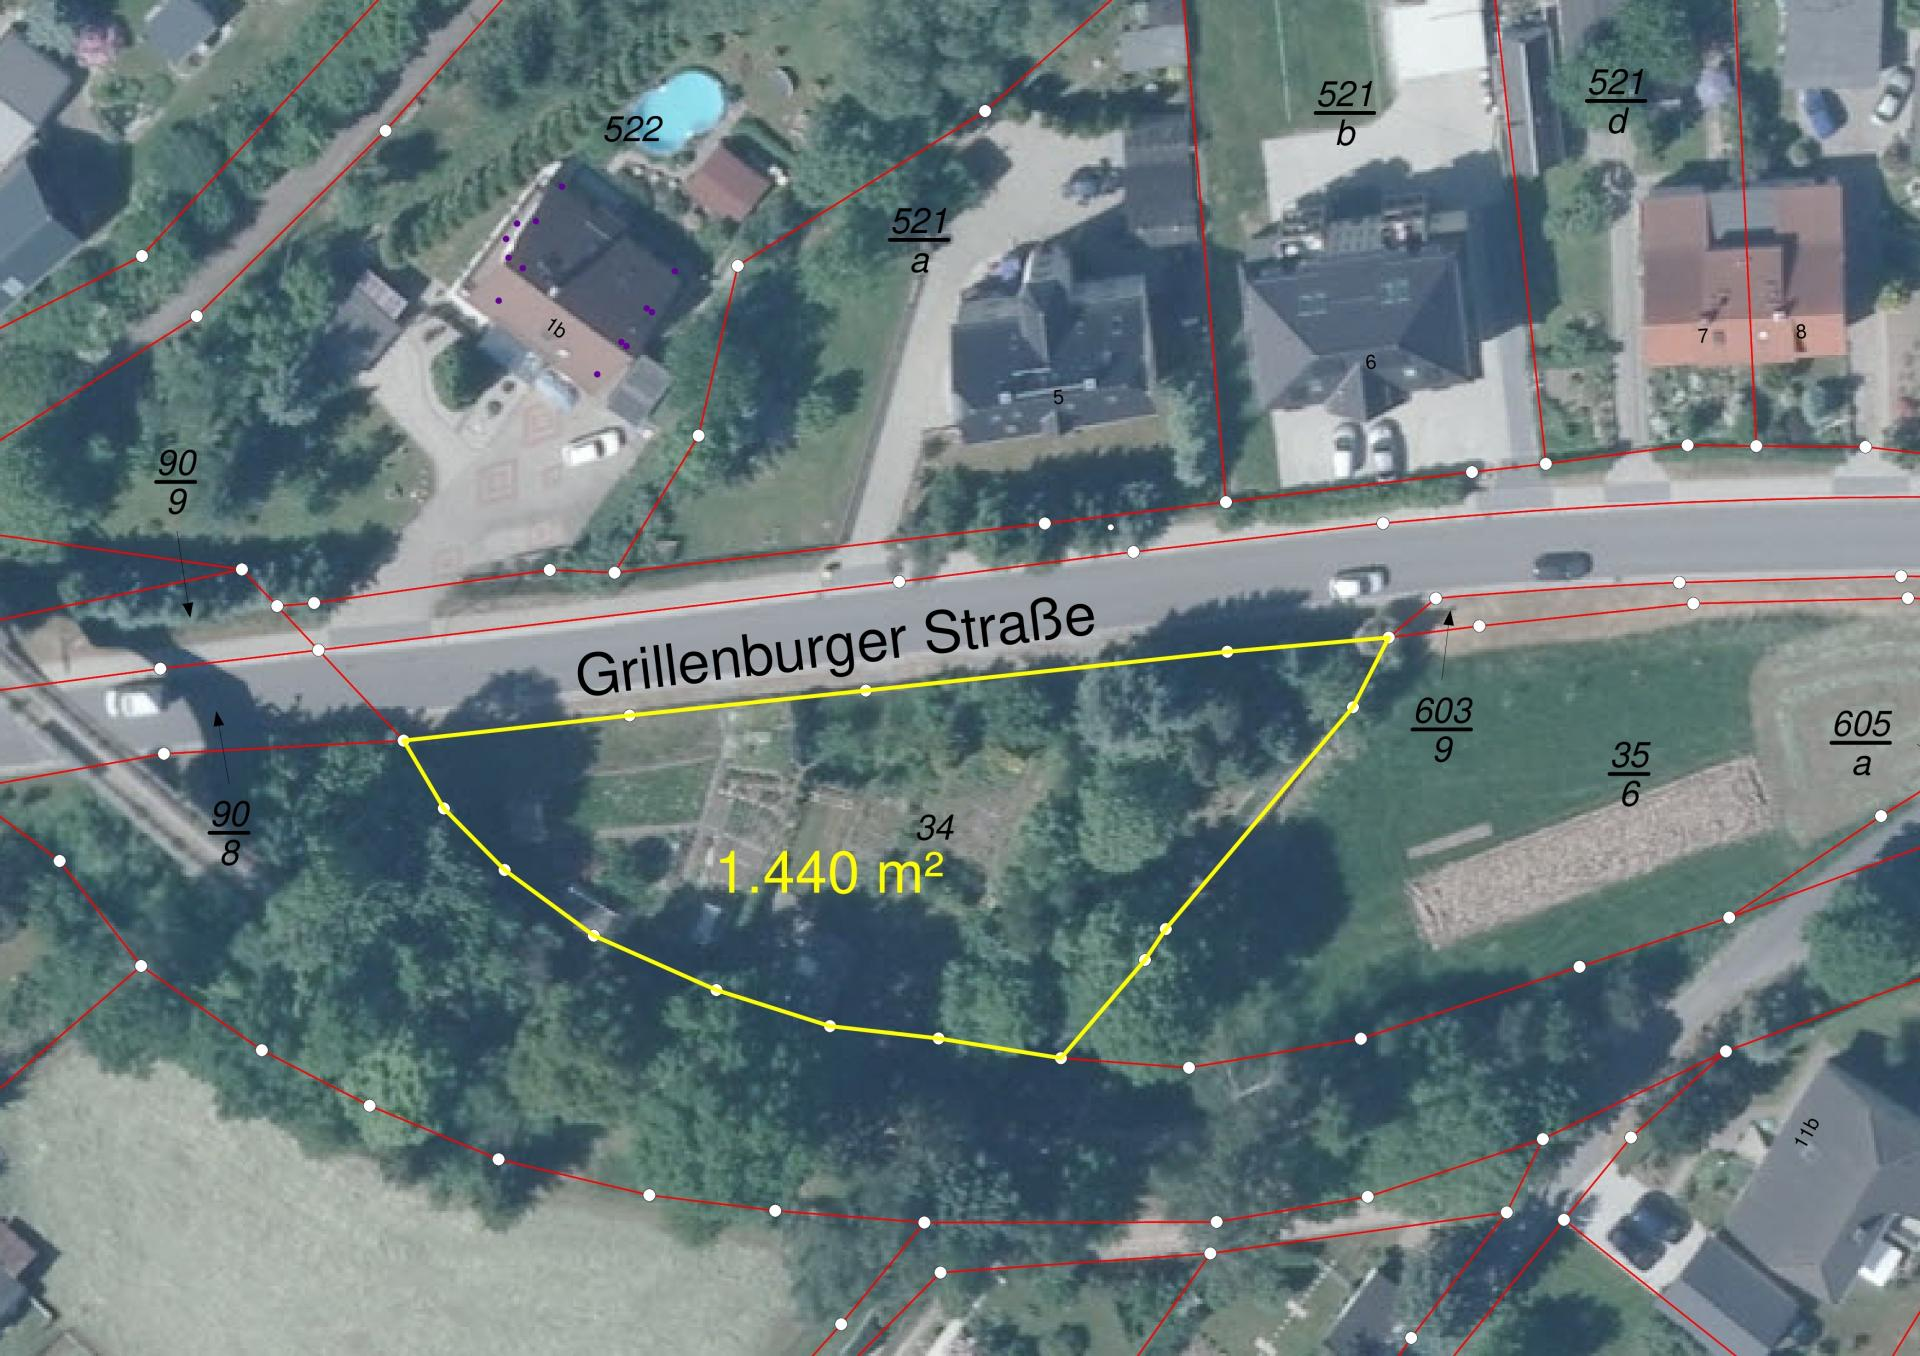 Grillenburger Straße